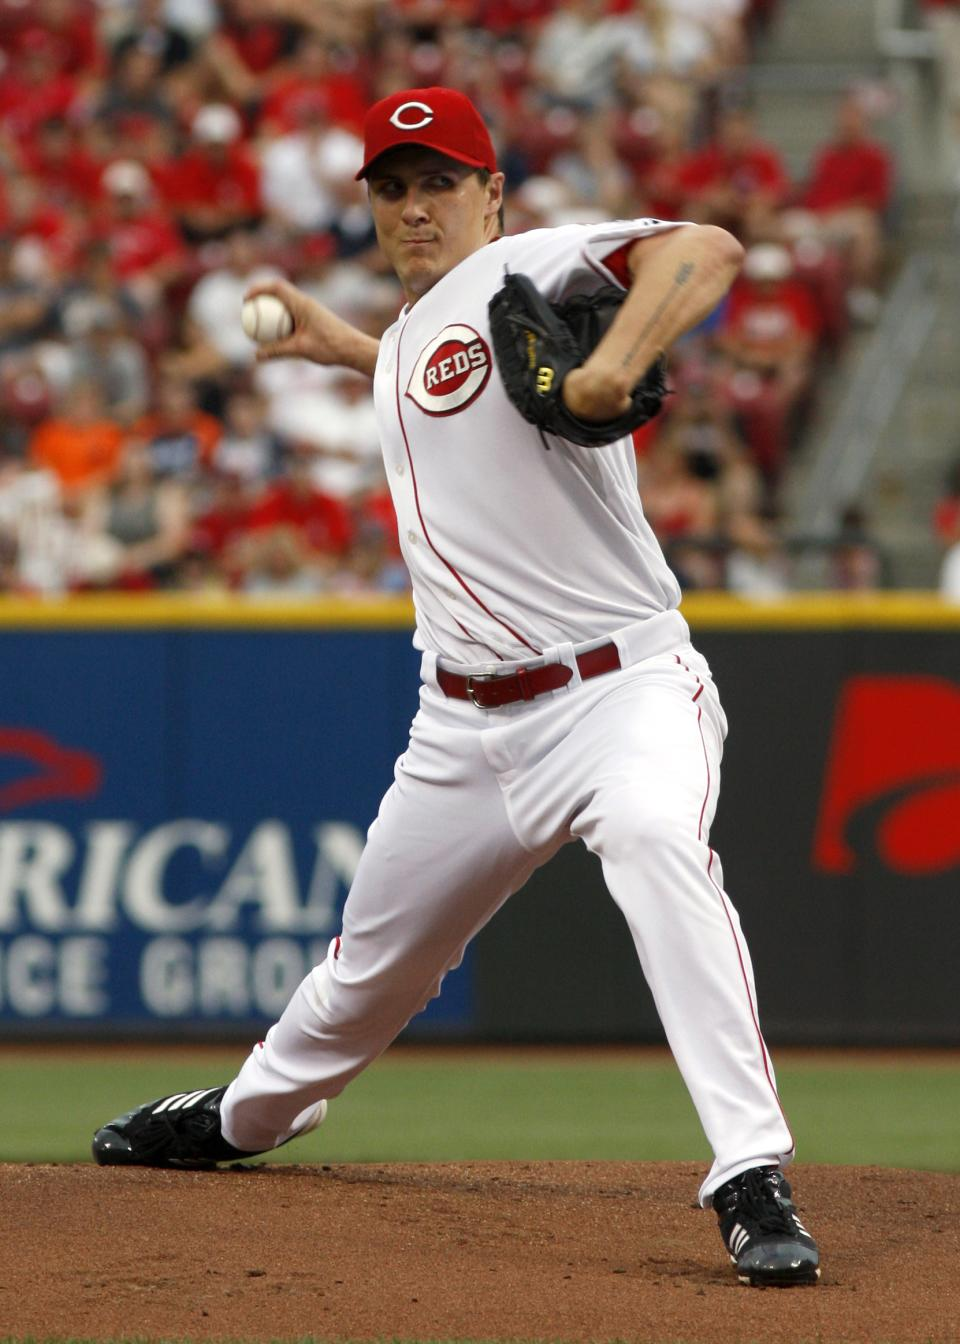 Cincinnati Reds starting pitcher Homer Bailey throws against the Detroit Tigers in the first inning of a baseball game, Sunday, June 10, 2012, in Cincinnati. (AP Photo/David Kohl)